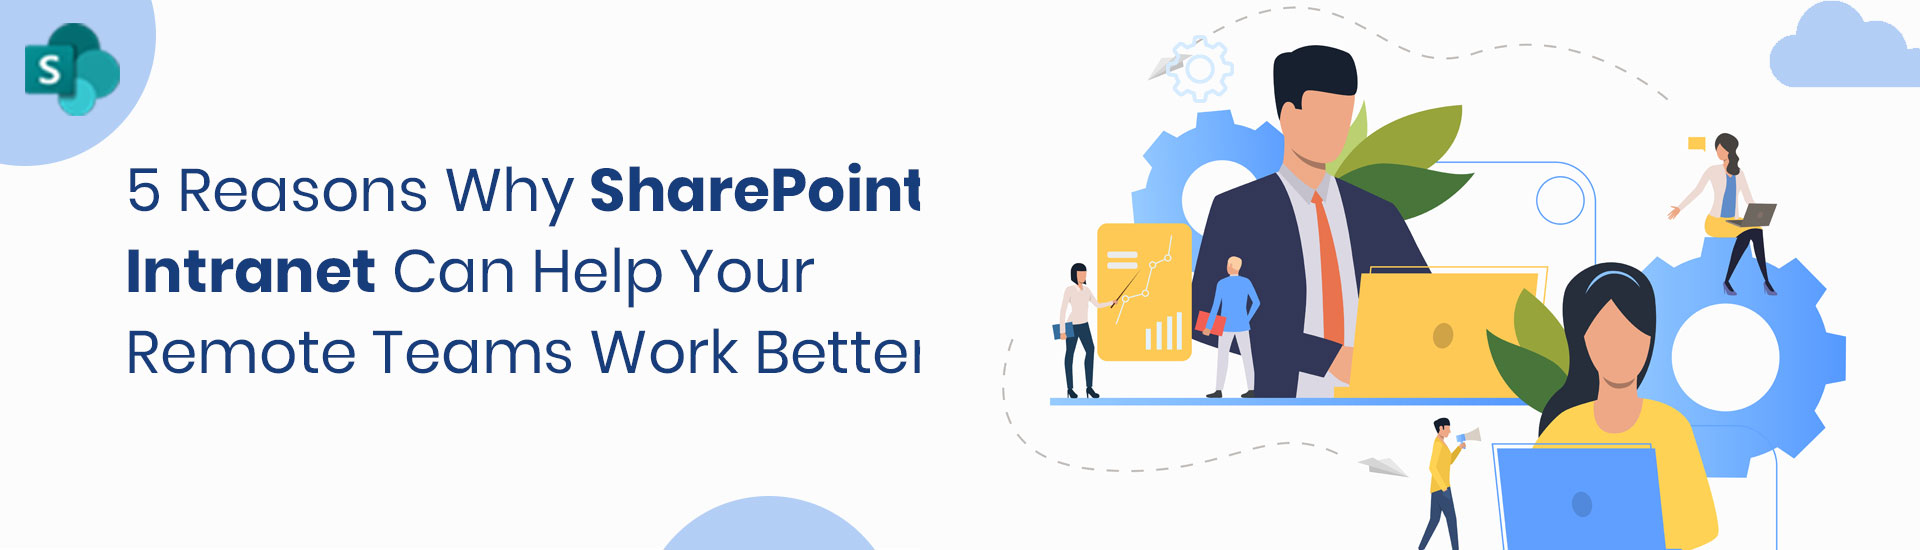 5 reasons why SharePoint Intranet can help your remote teams work better